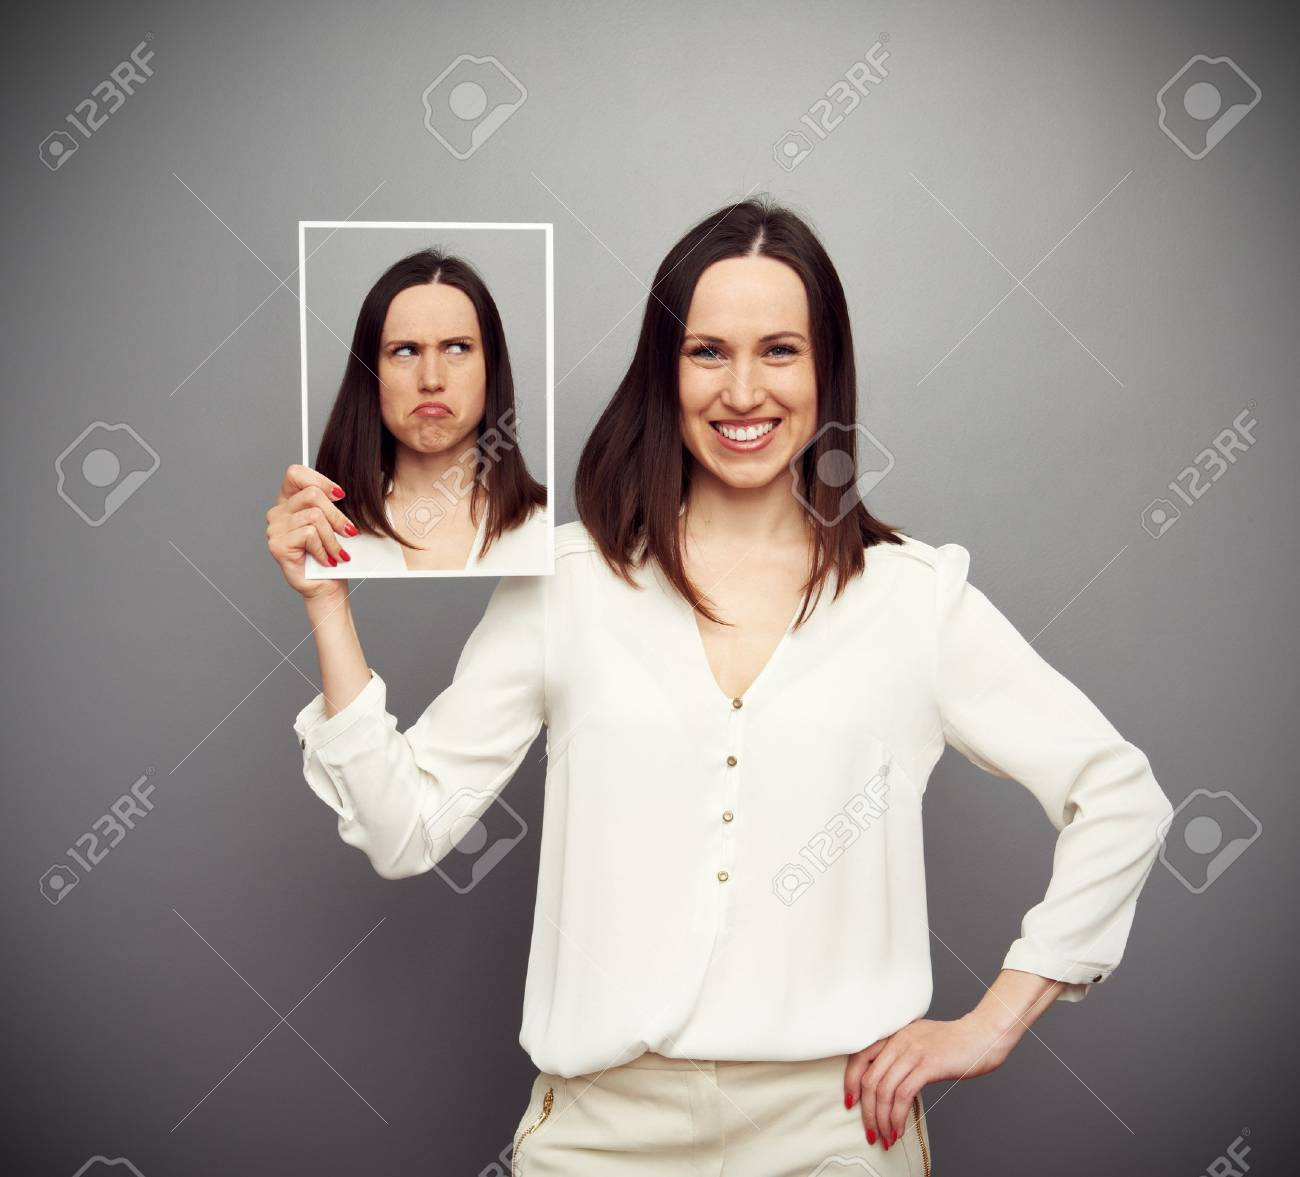 young smiley woman thoughtful inside Stock Photo - 19062793